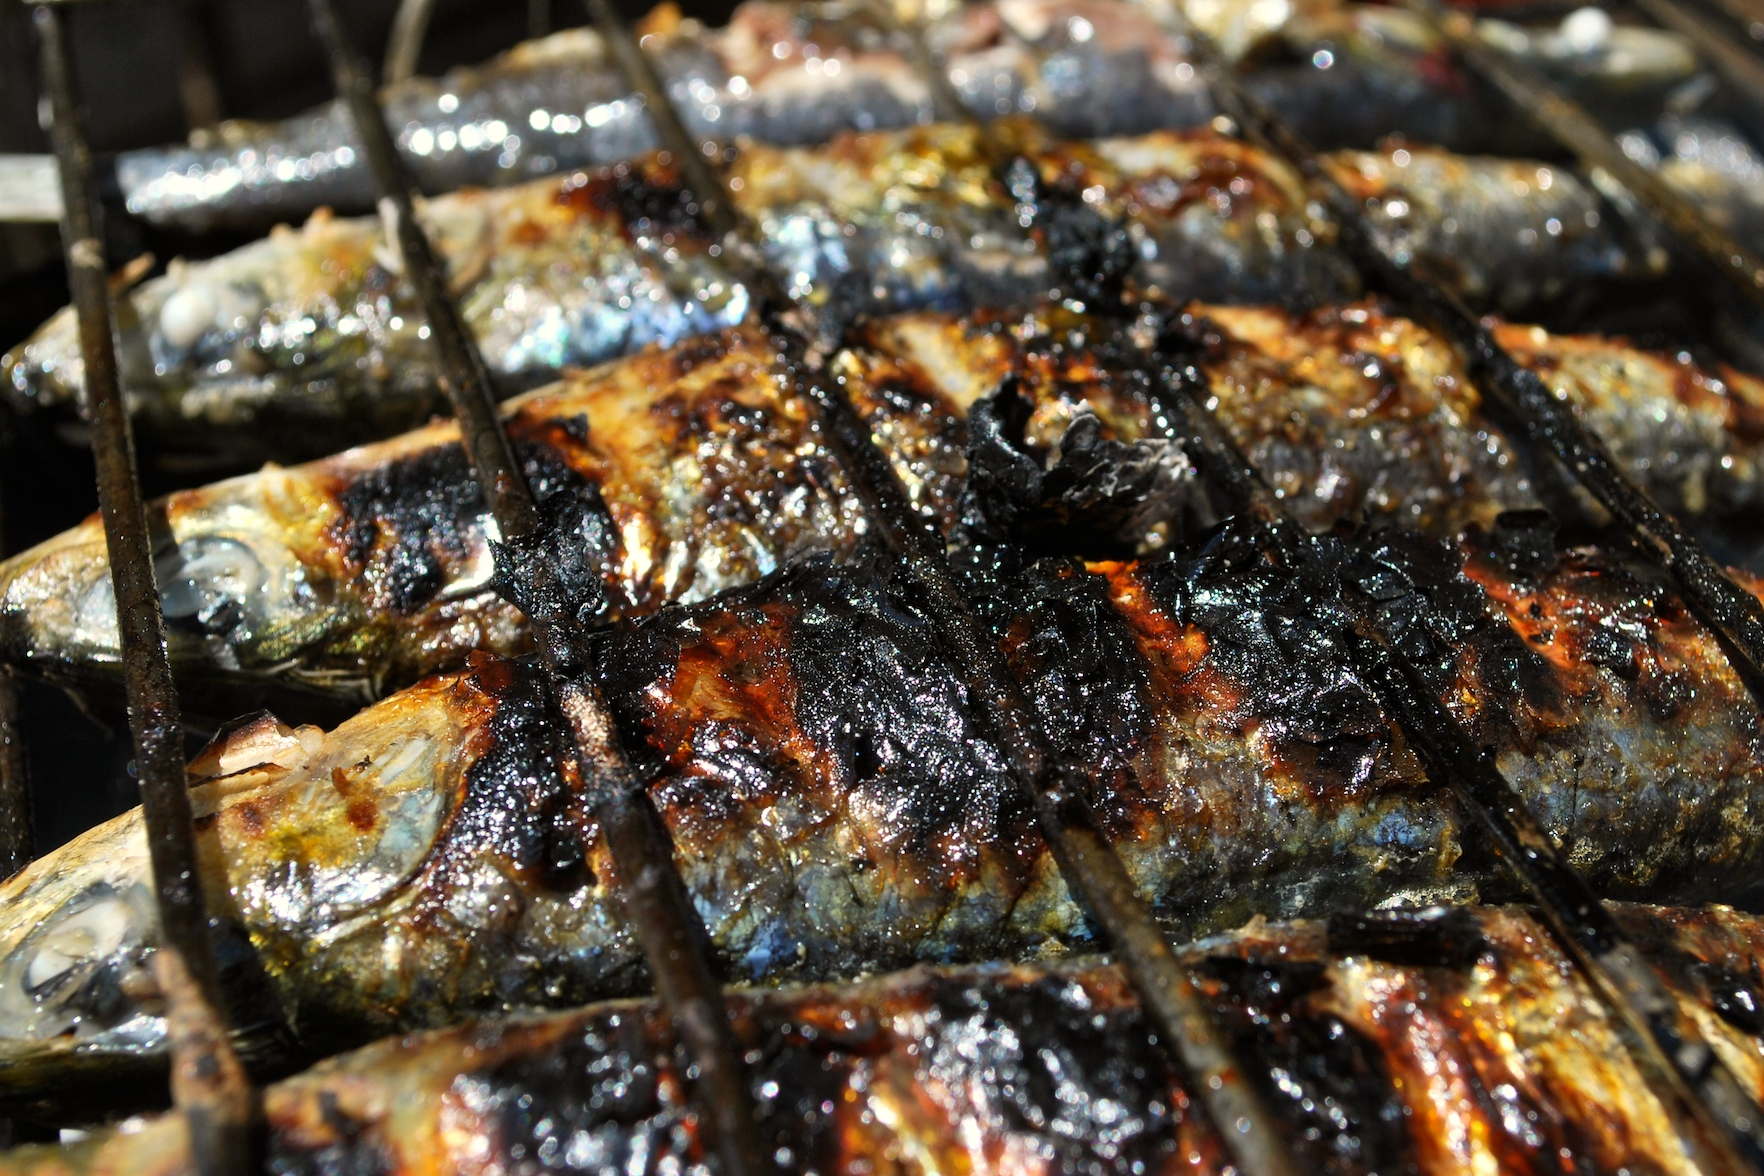 Sardines grilling on charcoal